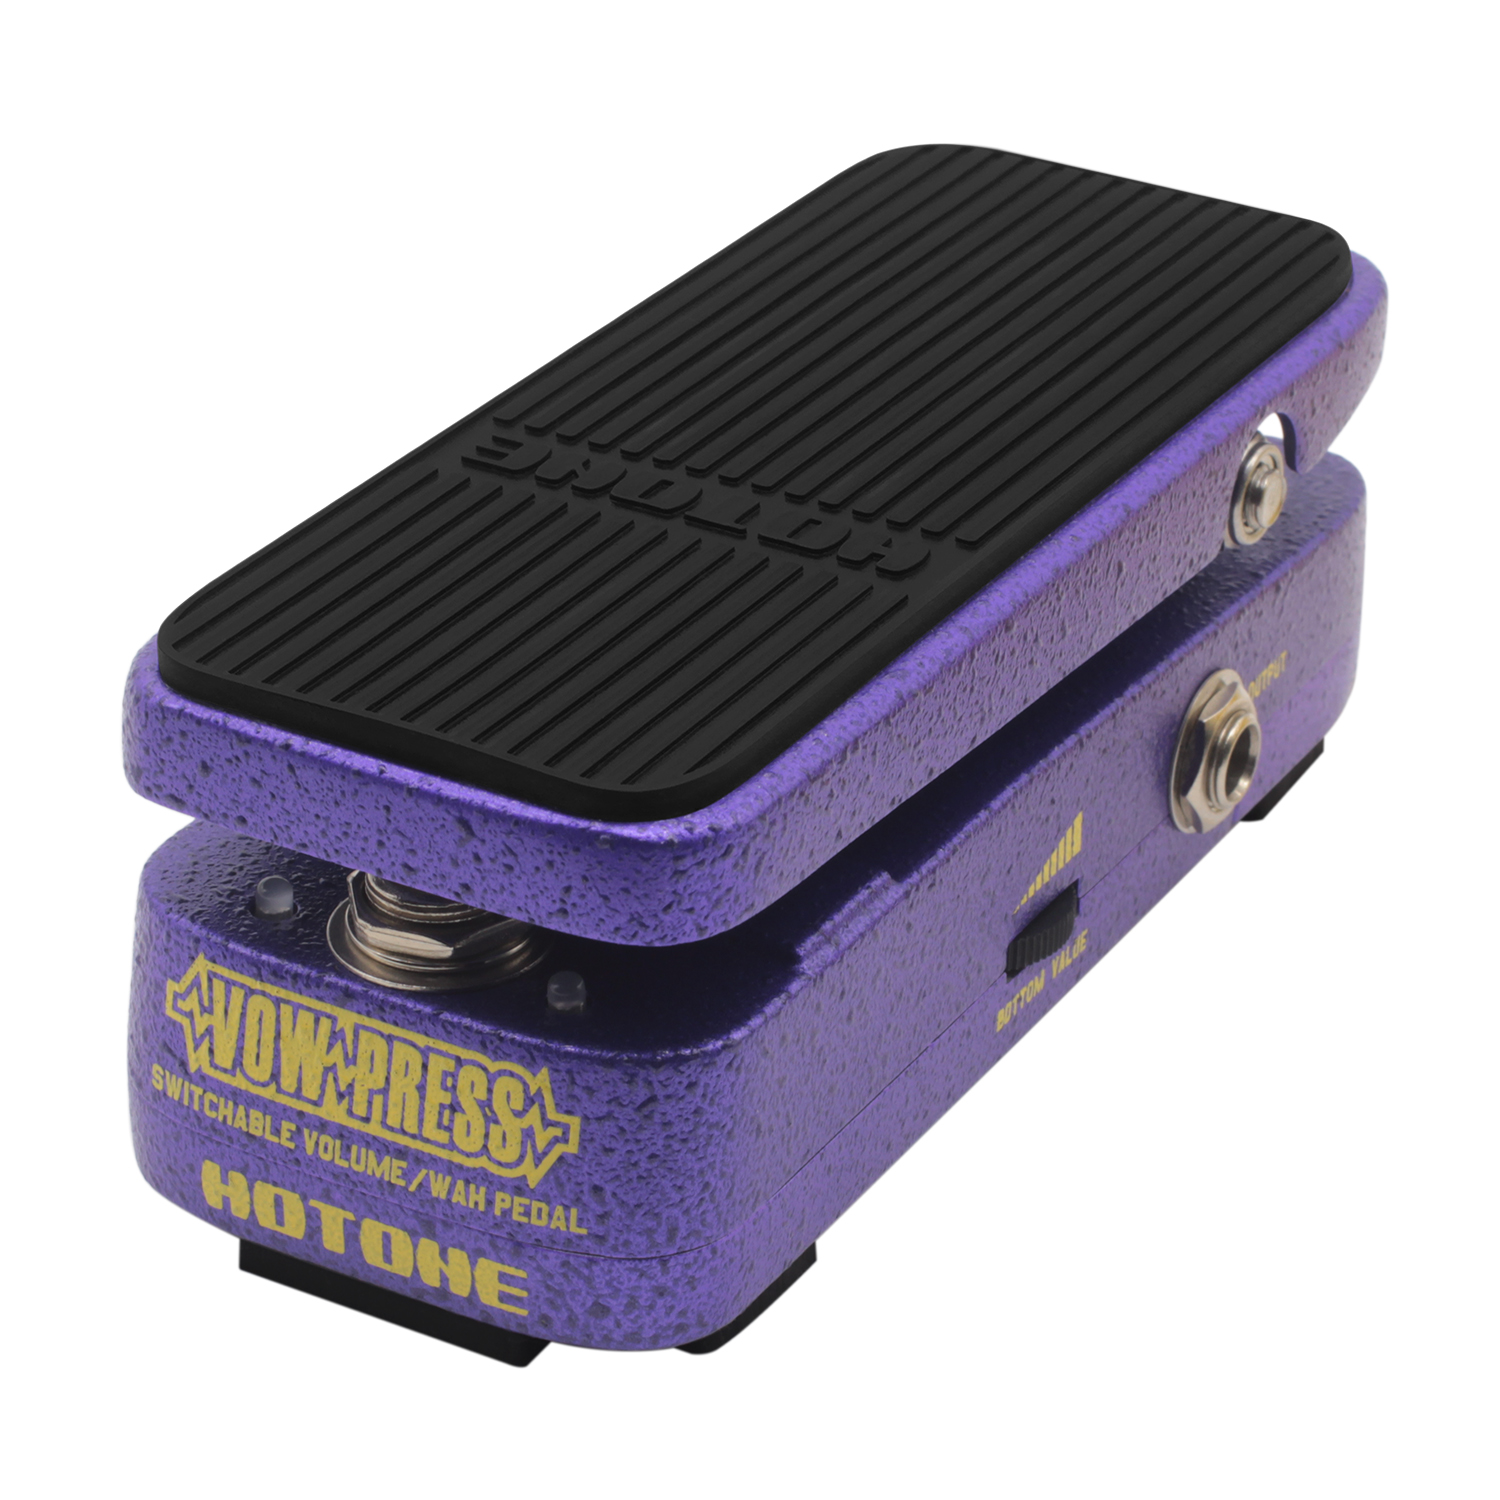 Hotone Vow Press Volume Wah Effect Pedal Based on CryBaby Wah Pedal 3-in-1 Electric Guitar Effects Adjustable Ccontrol Range kw 1 multi function guitar 2 in 1 mini volume wah pedal toy musical instrument